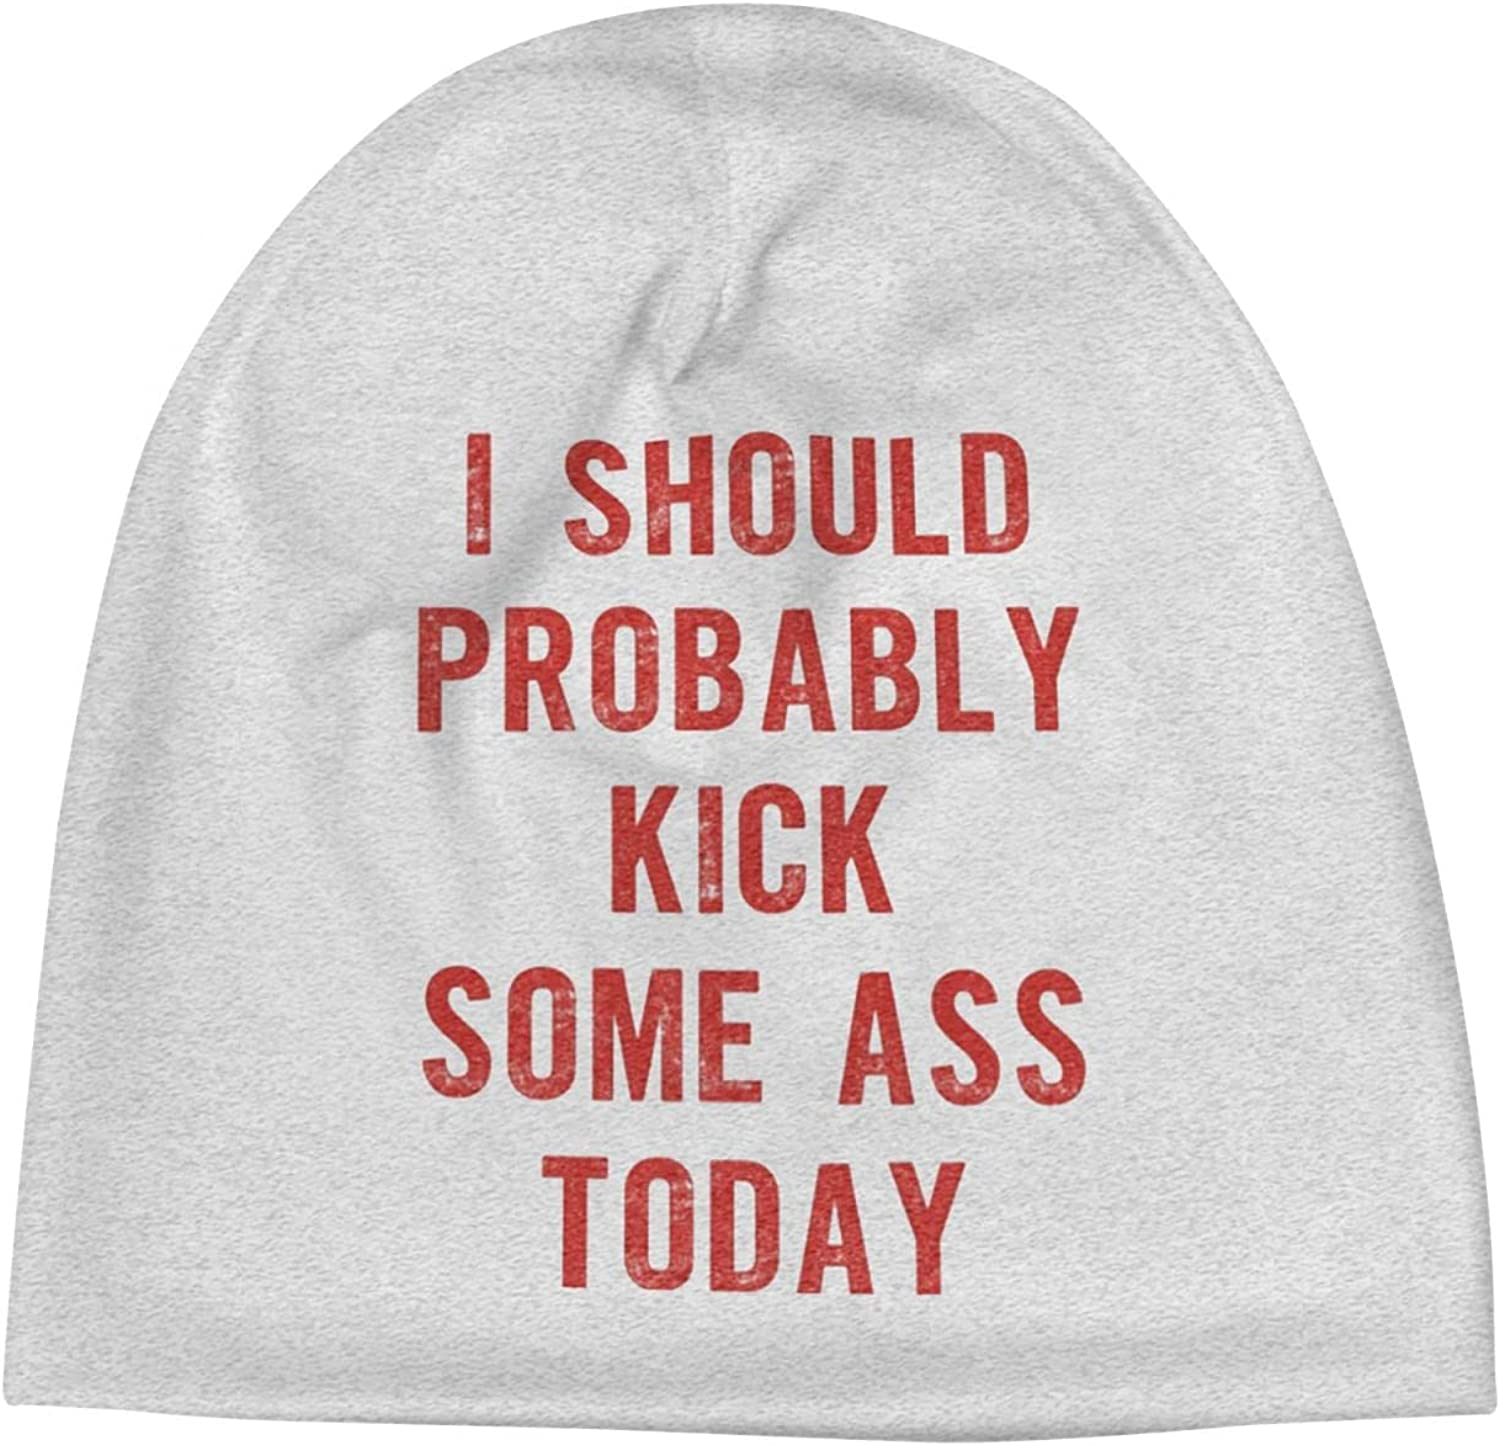 I Should Outstanding Probably Kick Some Ass Cap Inexpensive Slogan Beanie Today7 Unisex